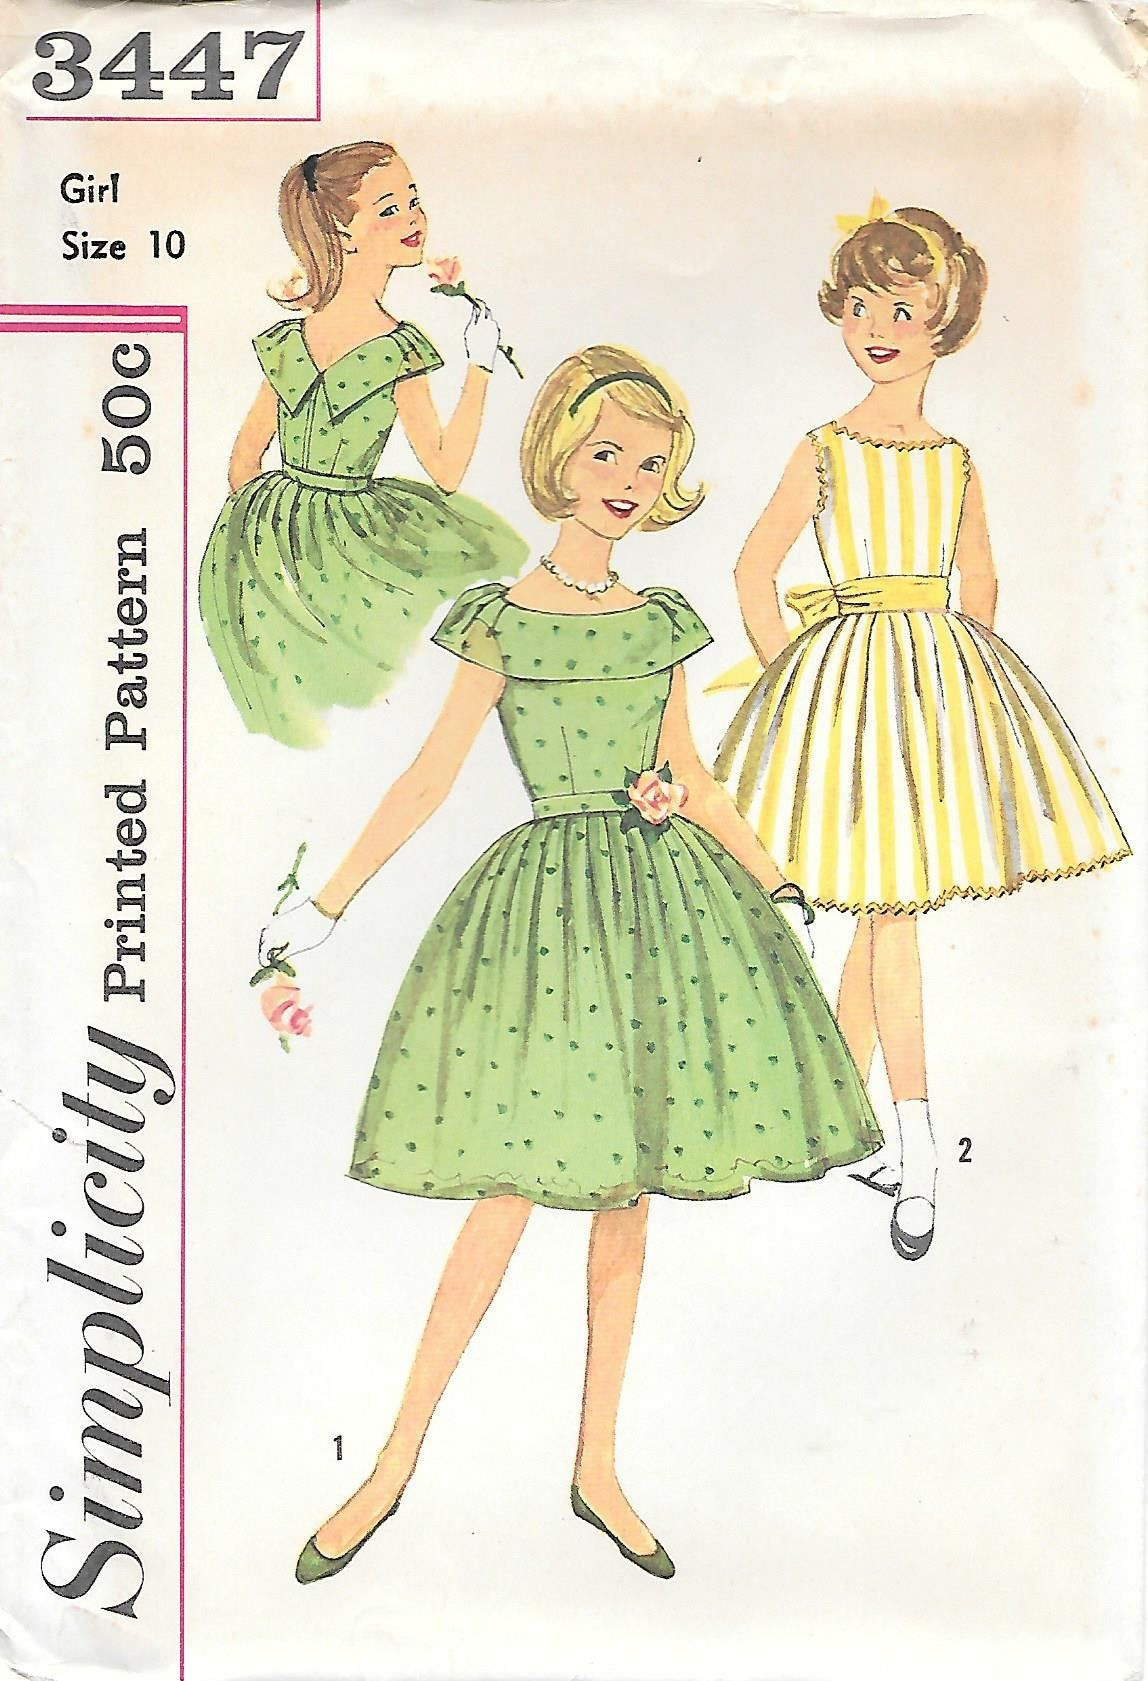 Vintage 1960s Simplicity 3447 Girls Sleeveless Party Dress Sewing Pattern Size 8 Or 10 Uncut Ff Sewing Patterns Girls Girls Party Dress Vintage Sewing Patterns [ 1681 x 1148 Pixel ]